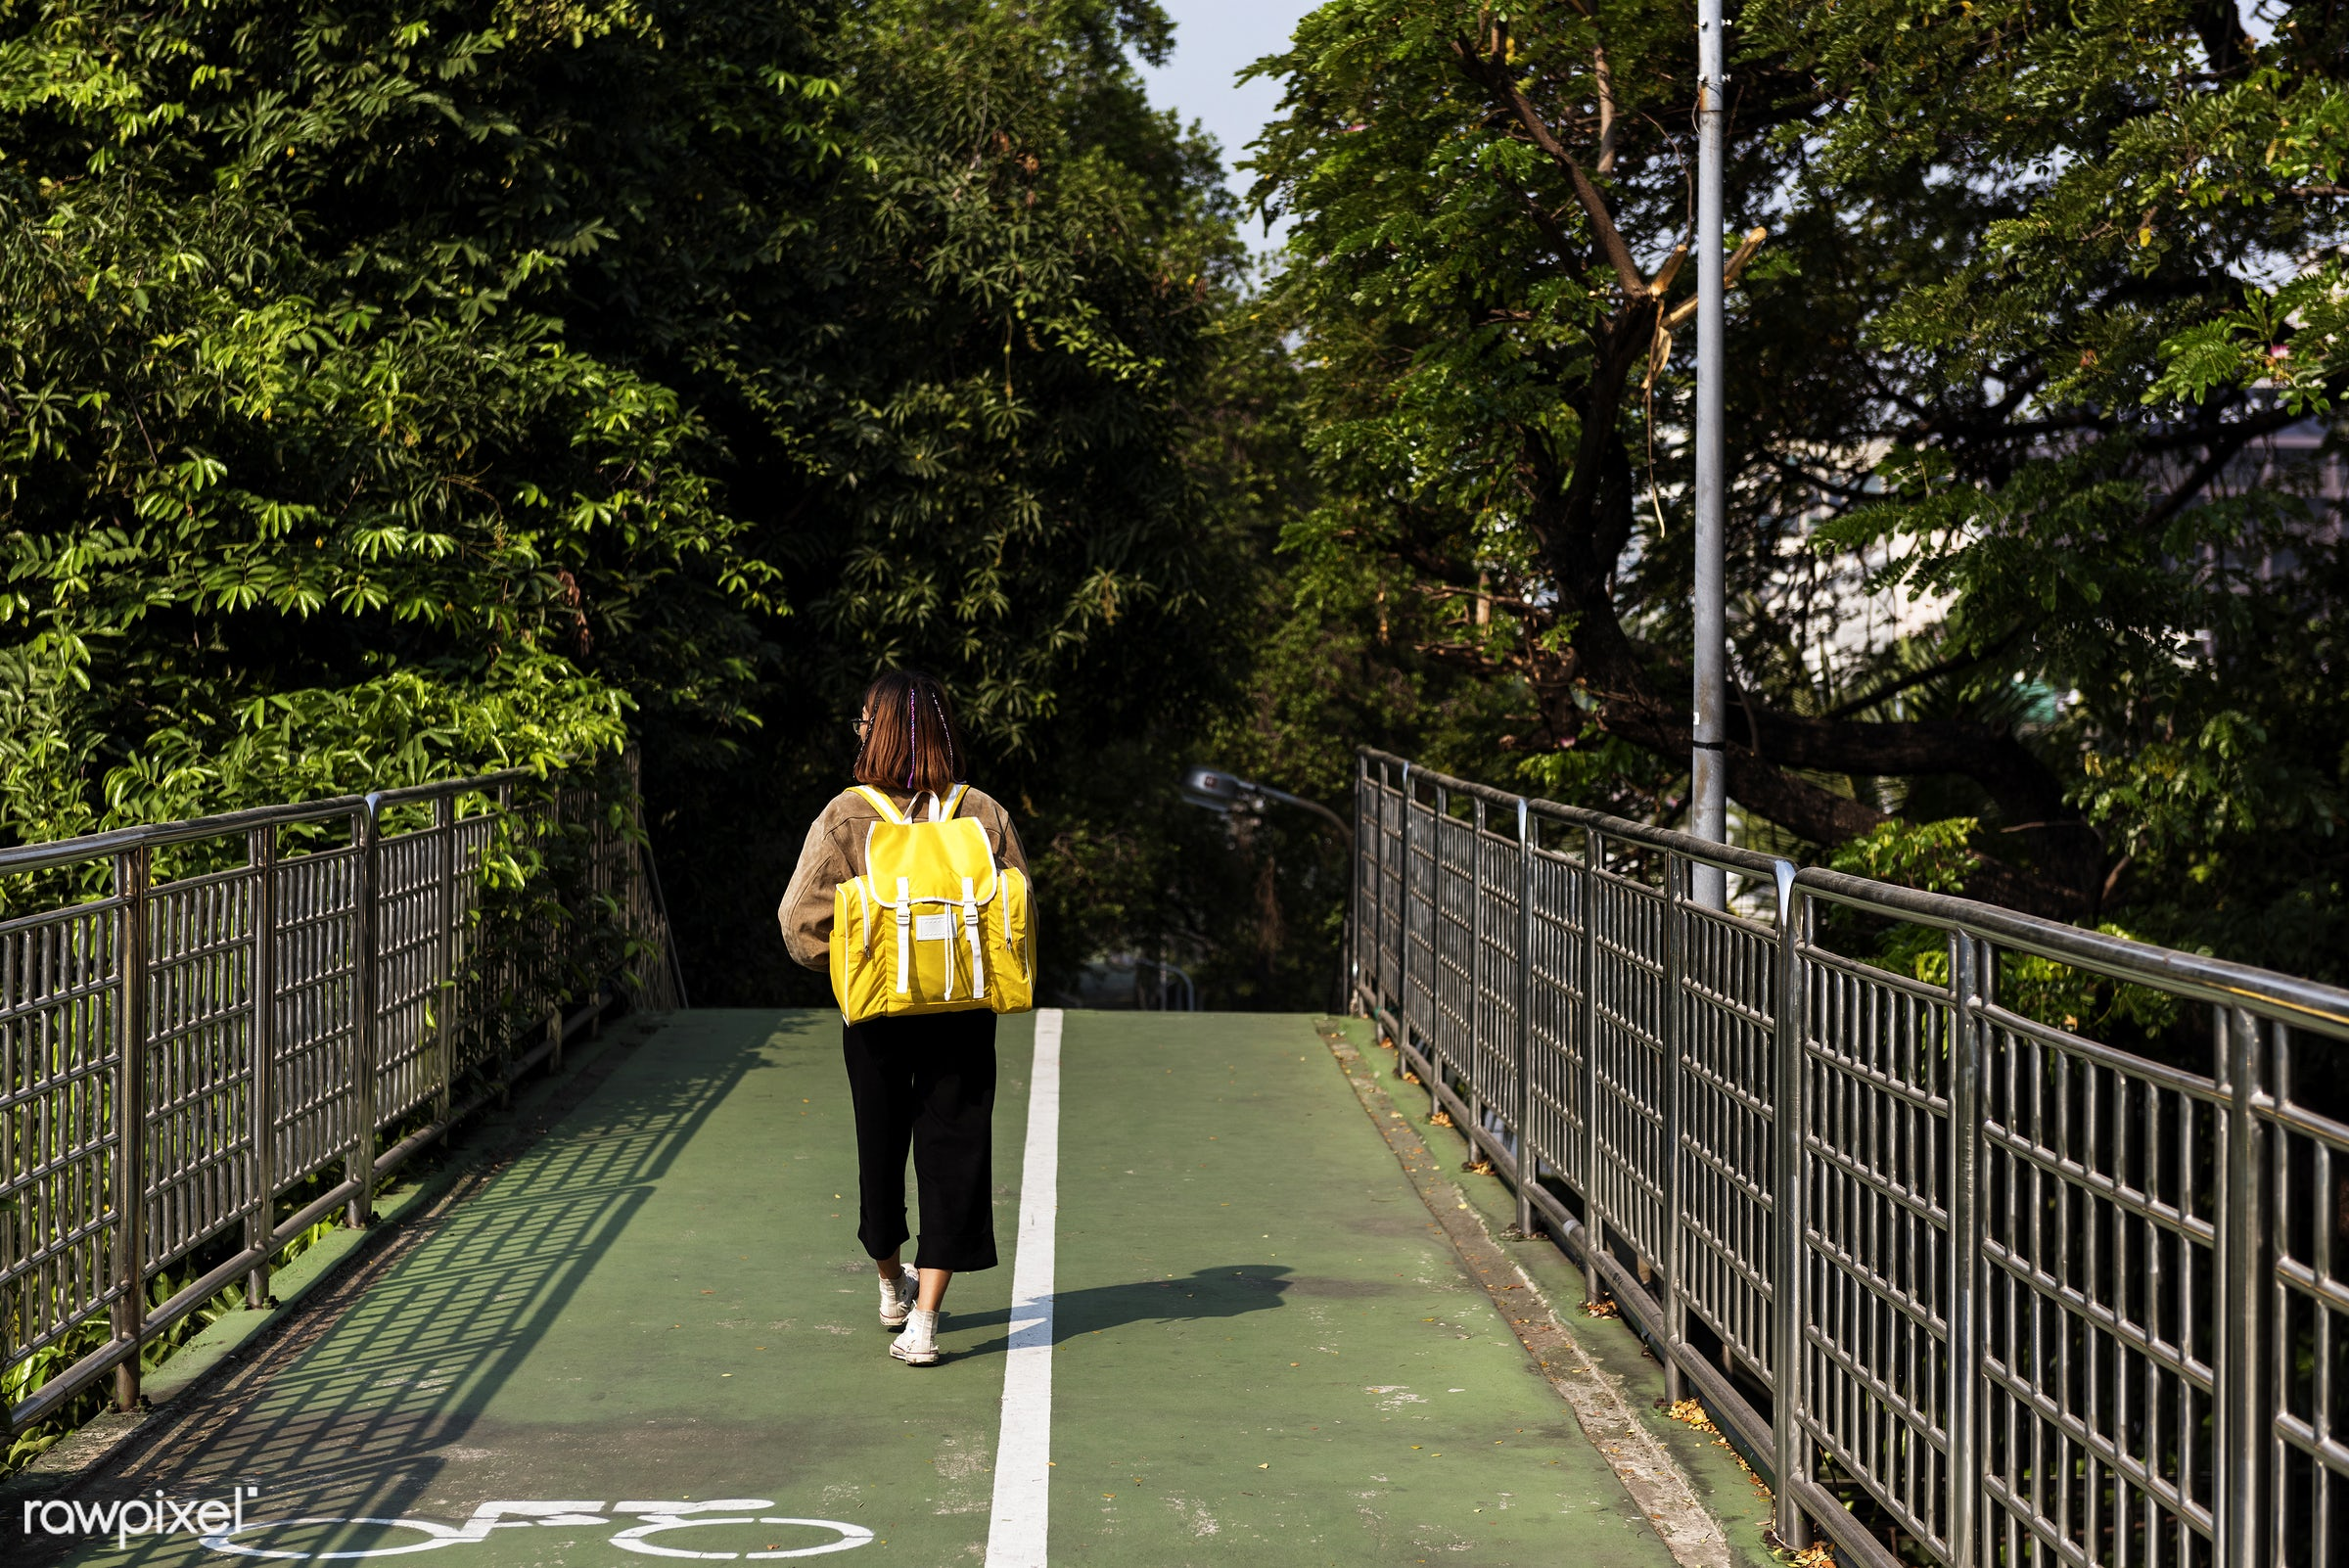 girl, woman, alone, outside, asian, park, bridge, path, trees, nature, backpack, bag, travel, trip, journey, person